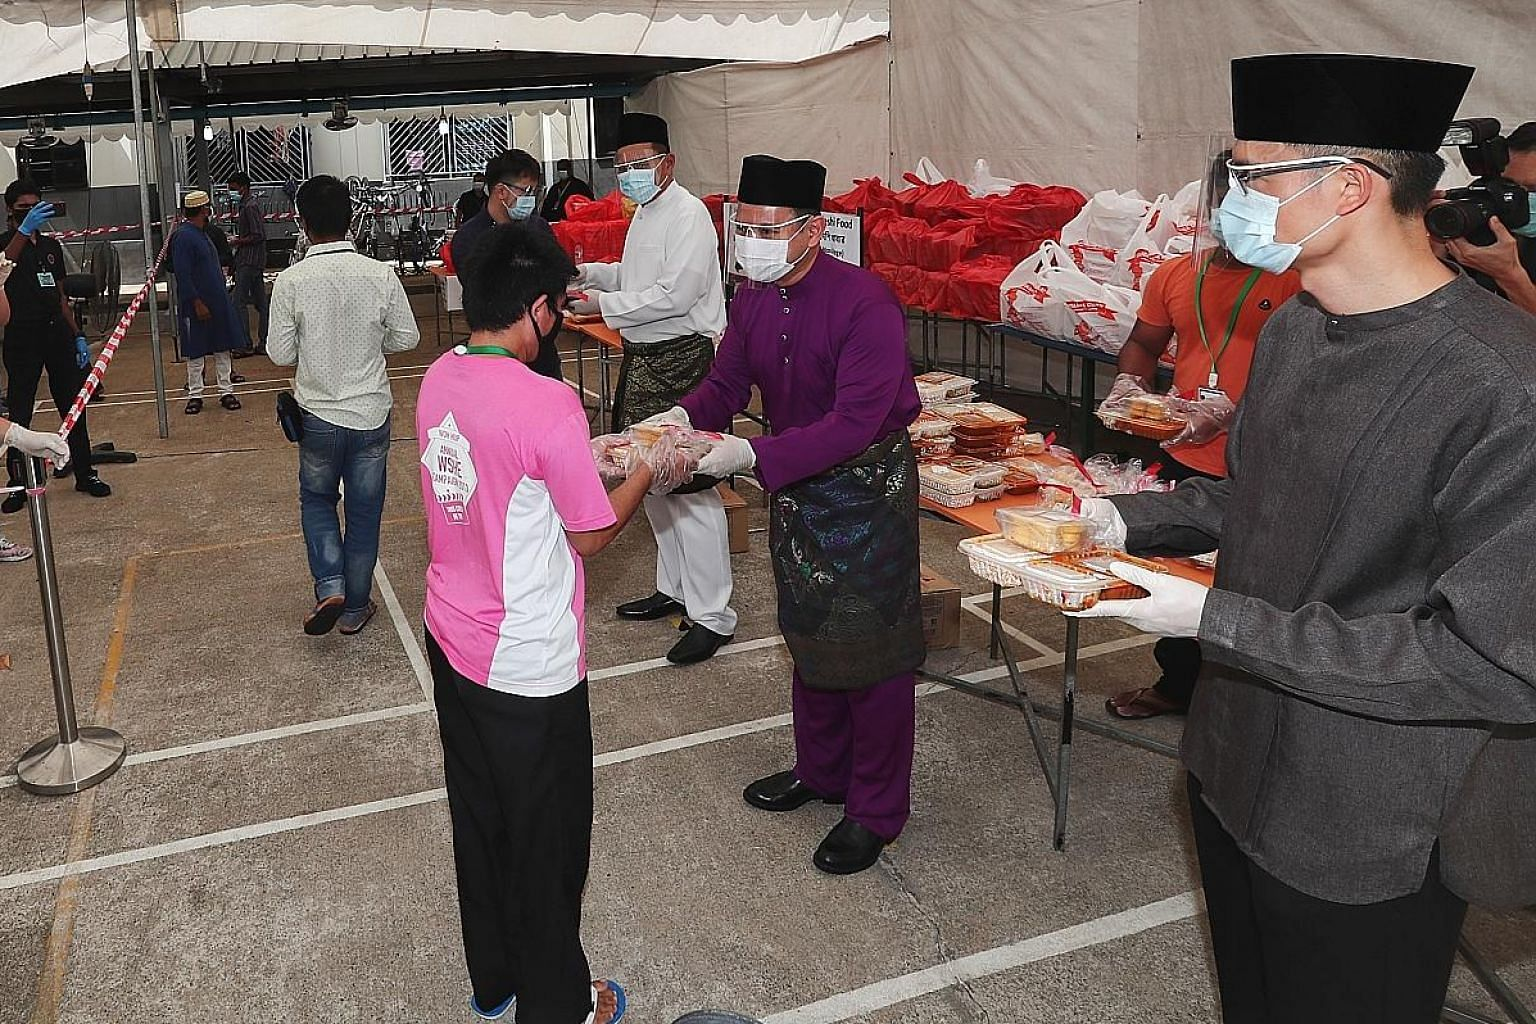 Minister of State for Manpower Zaqy Mohamad (centre), flanked by Muis chief executive Esa Masood (right) and SMCCI deputy president Abu Bakar Mohd Nor, distributing special meals and festive goodies to migrant workers at Woodlands Dormitory to mark H